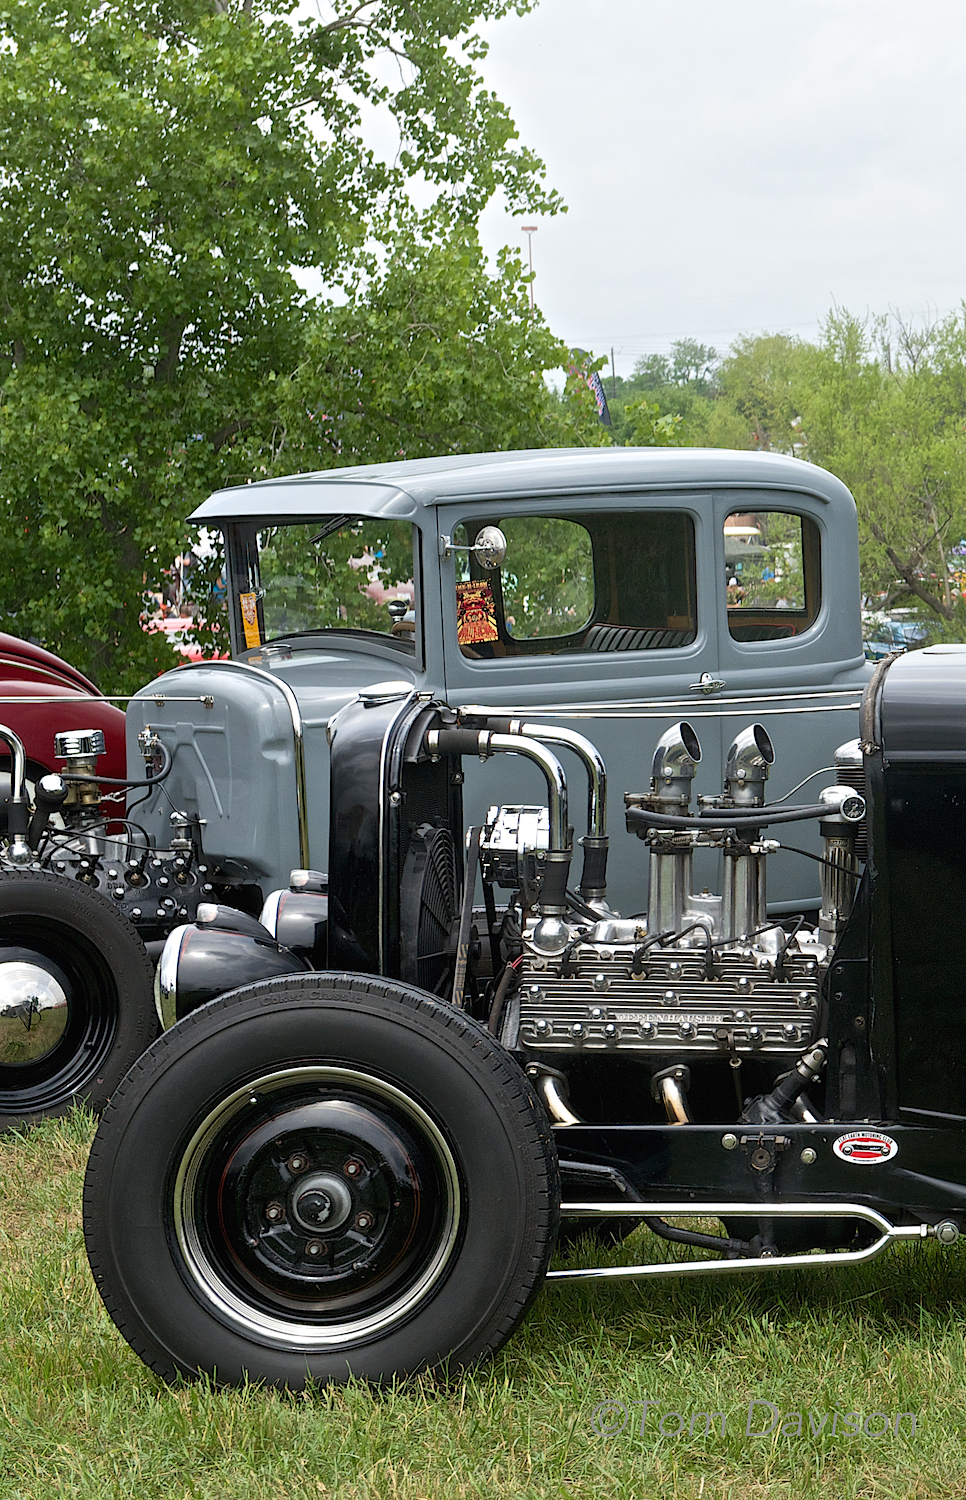 A classic hot rod engine, the early Ford flathead.